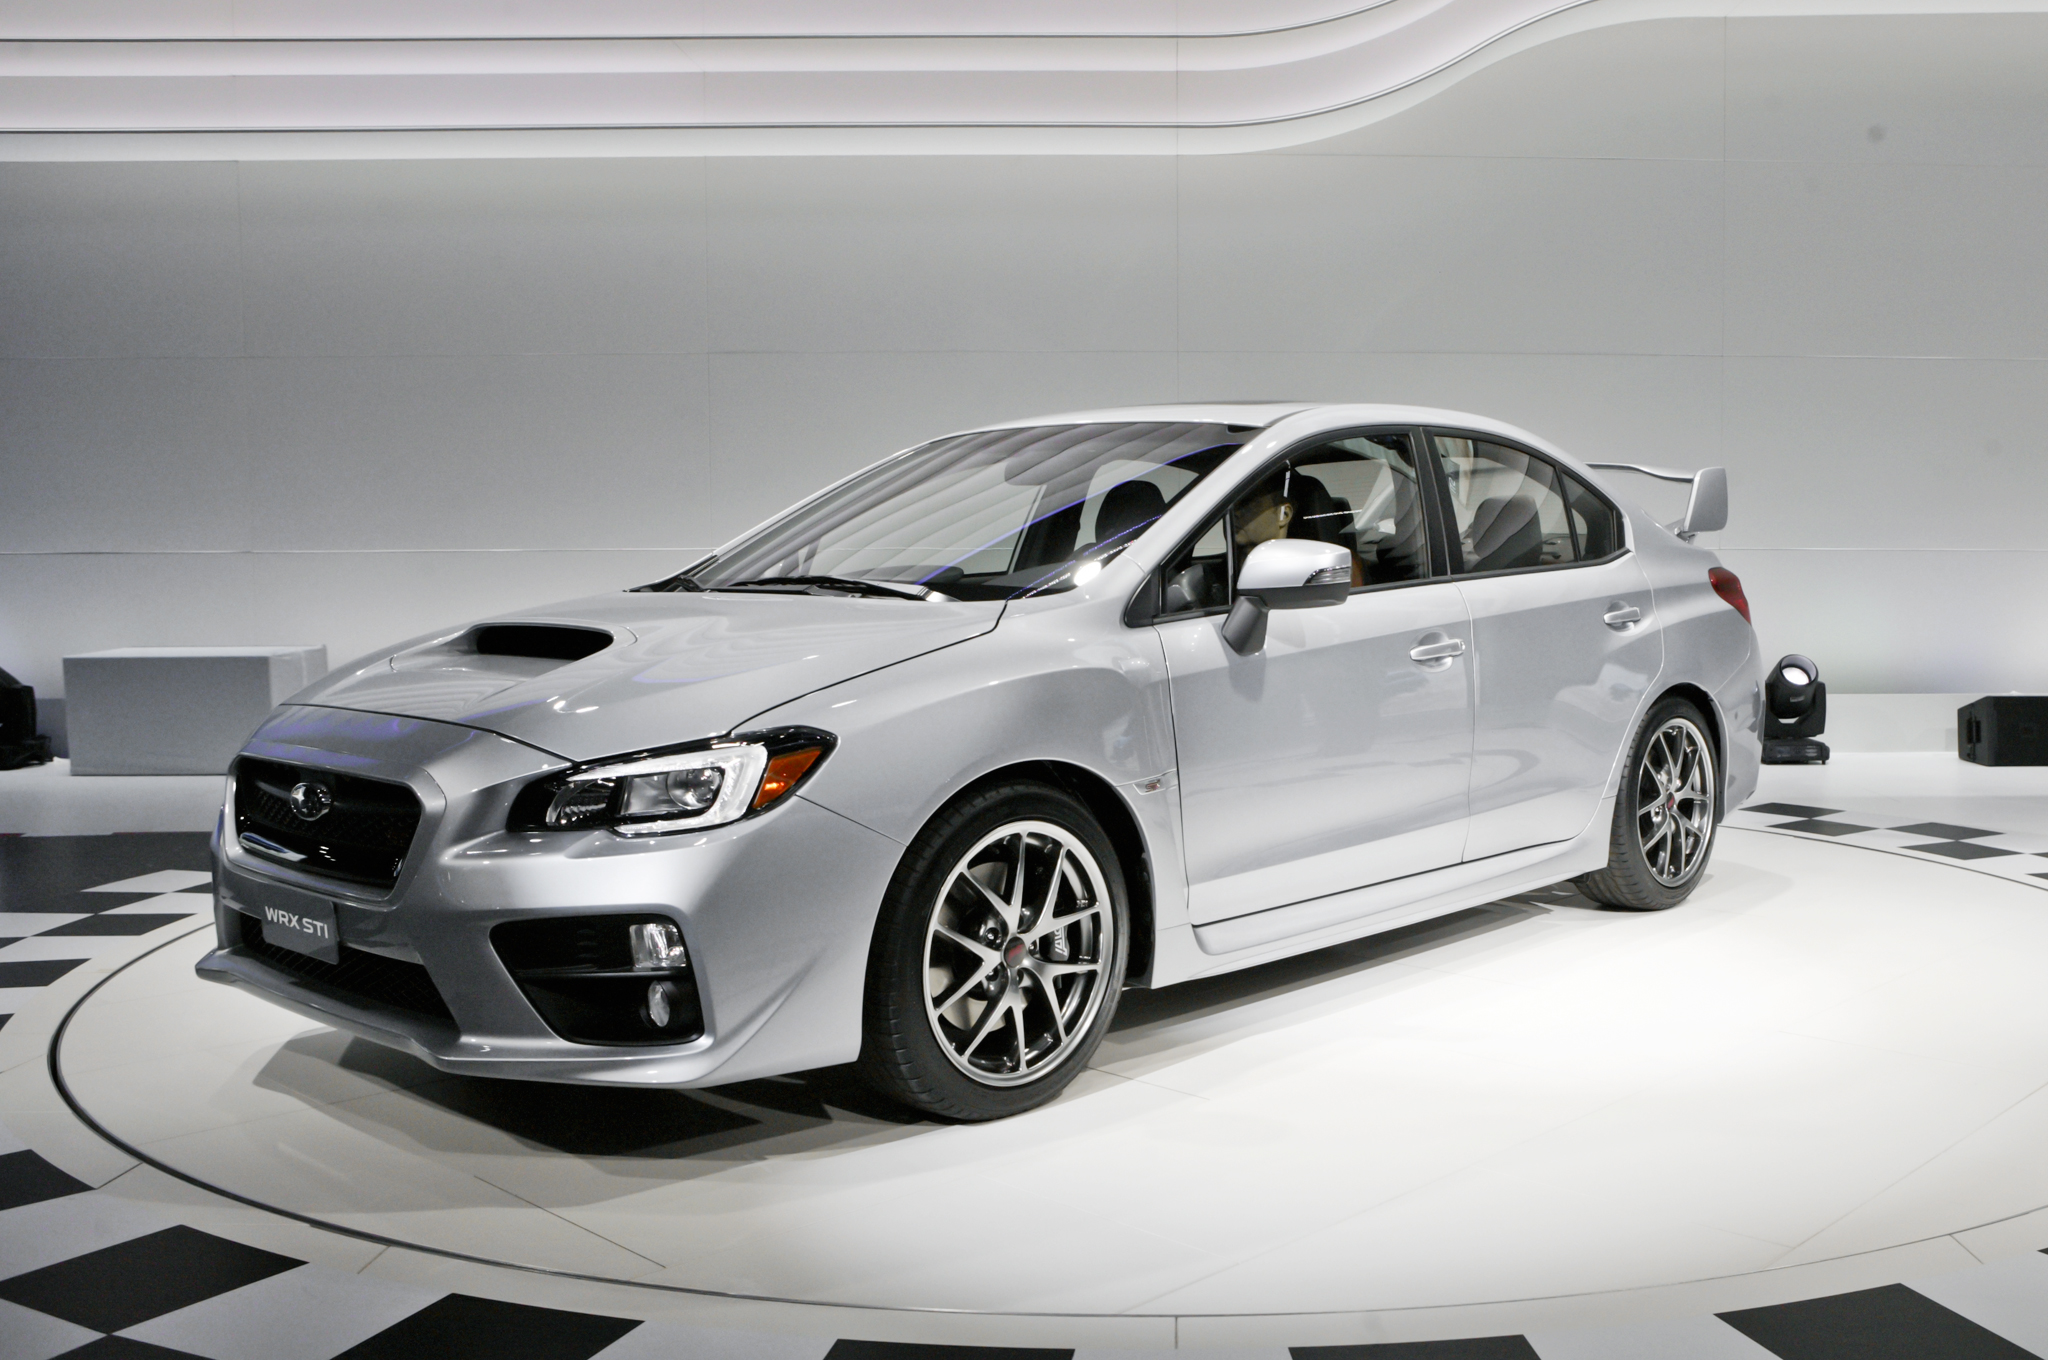 subaru wrx sti private fleet. Black Bedroom Furniture Sets. Home Design Ideas